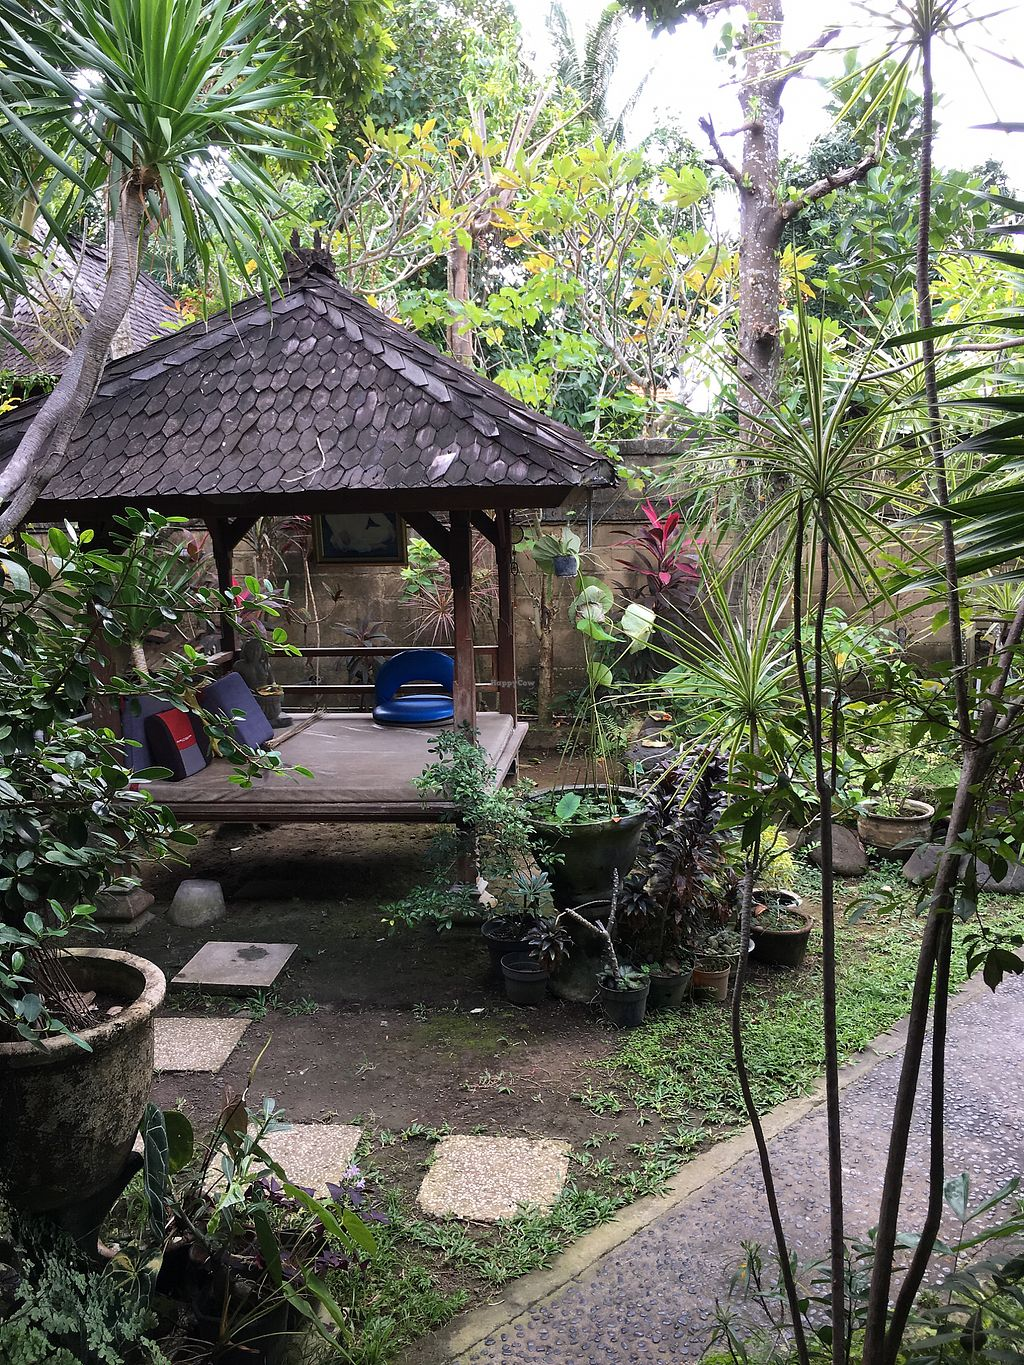 """Photo of Lotus Pond Cafe at Kuta Central Park Hotel  by <a href=""""/members/profile/zitath"""">zitath</a> <br/>meditation corner <br/> July 4, 2017  - <a href='/contact/abuse/image/49149/276604'>Report</a>"""